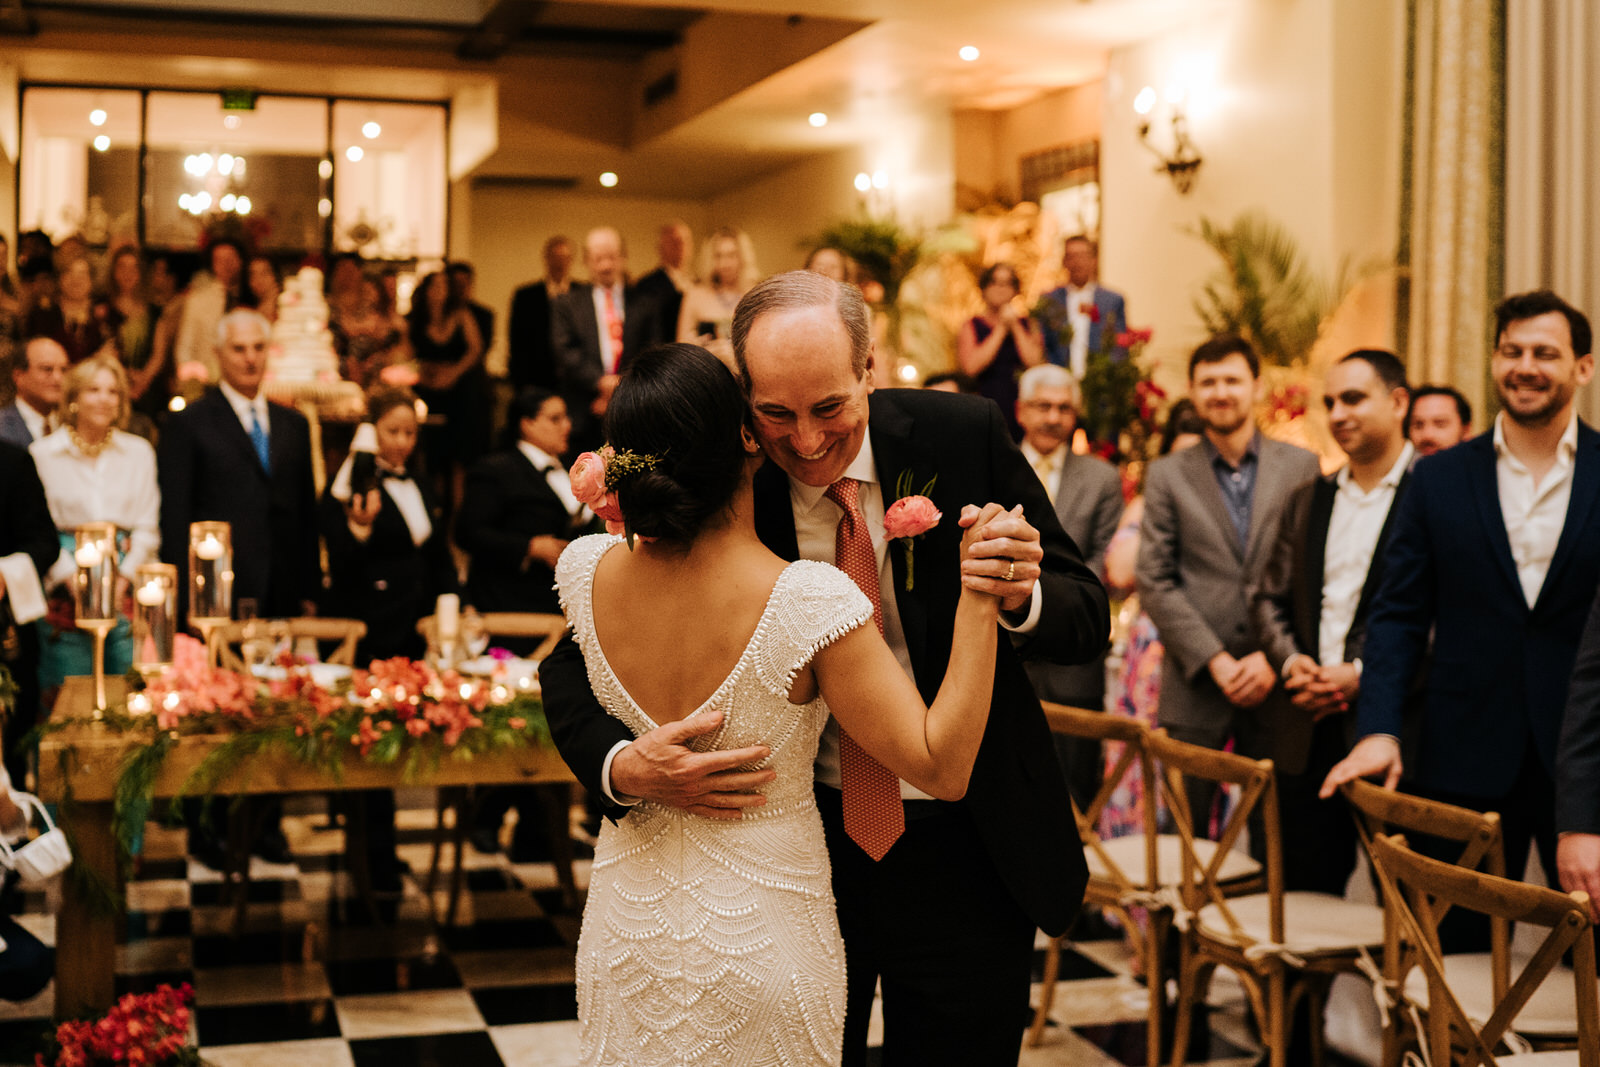 Bride dances with the father of the groom